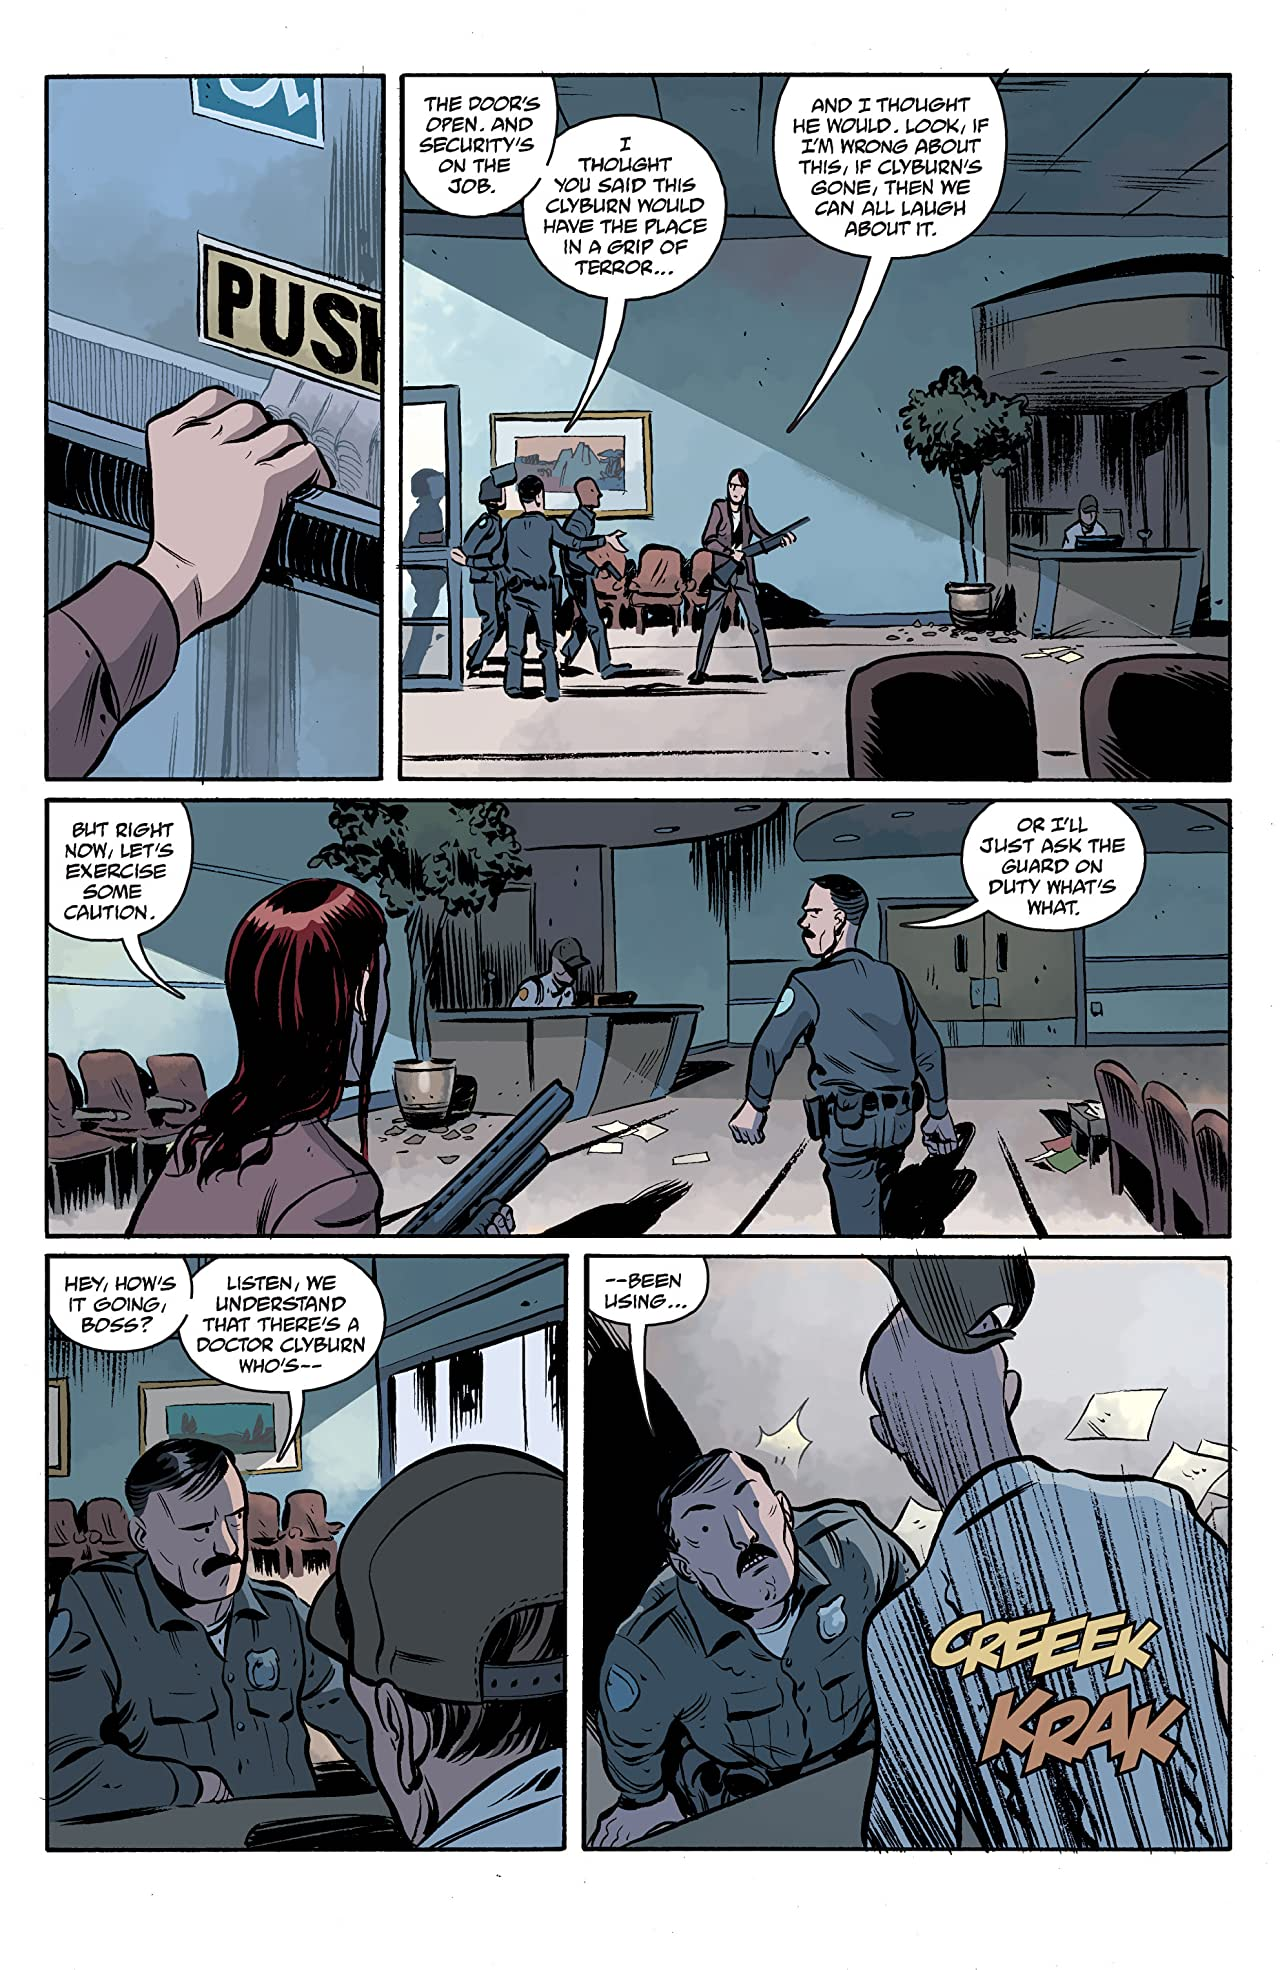 B.P.R.D.: Hell on Earth #114